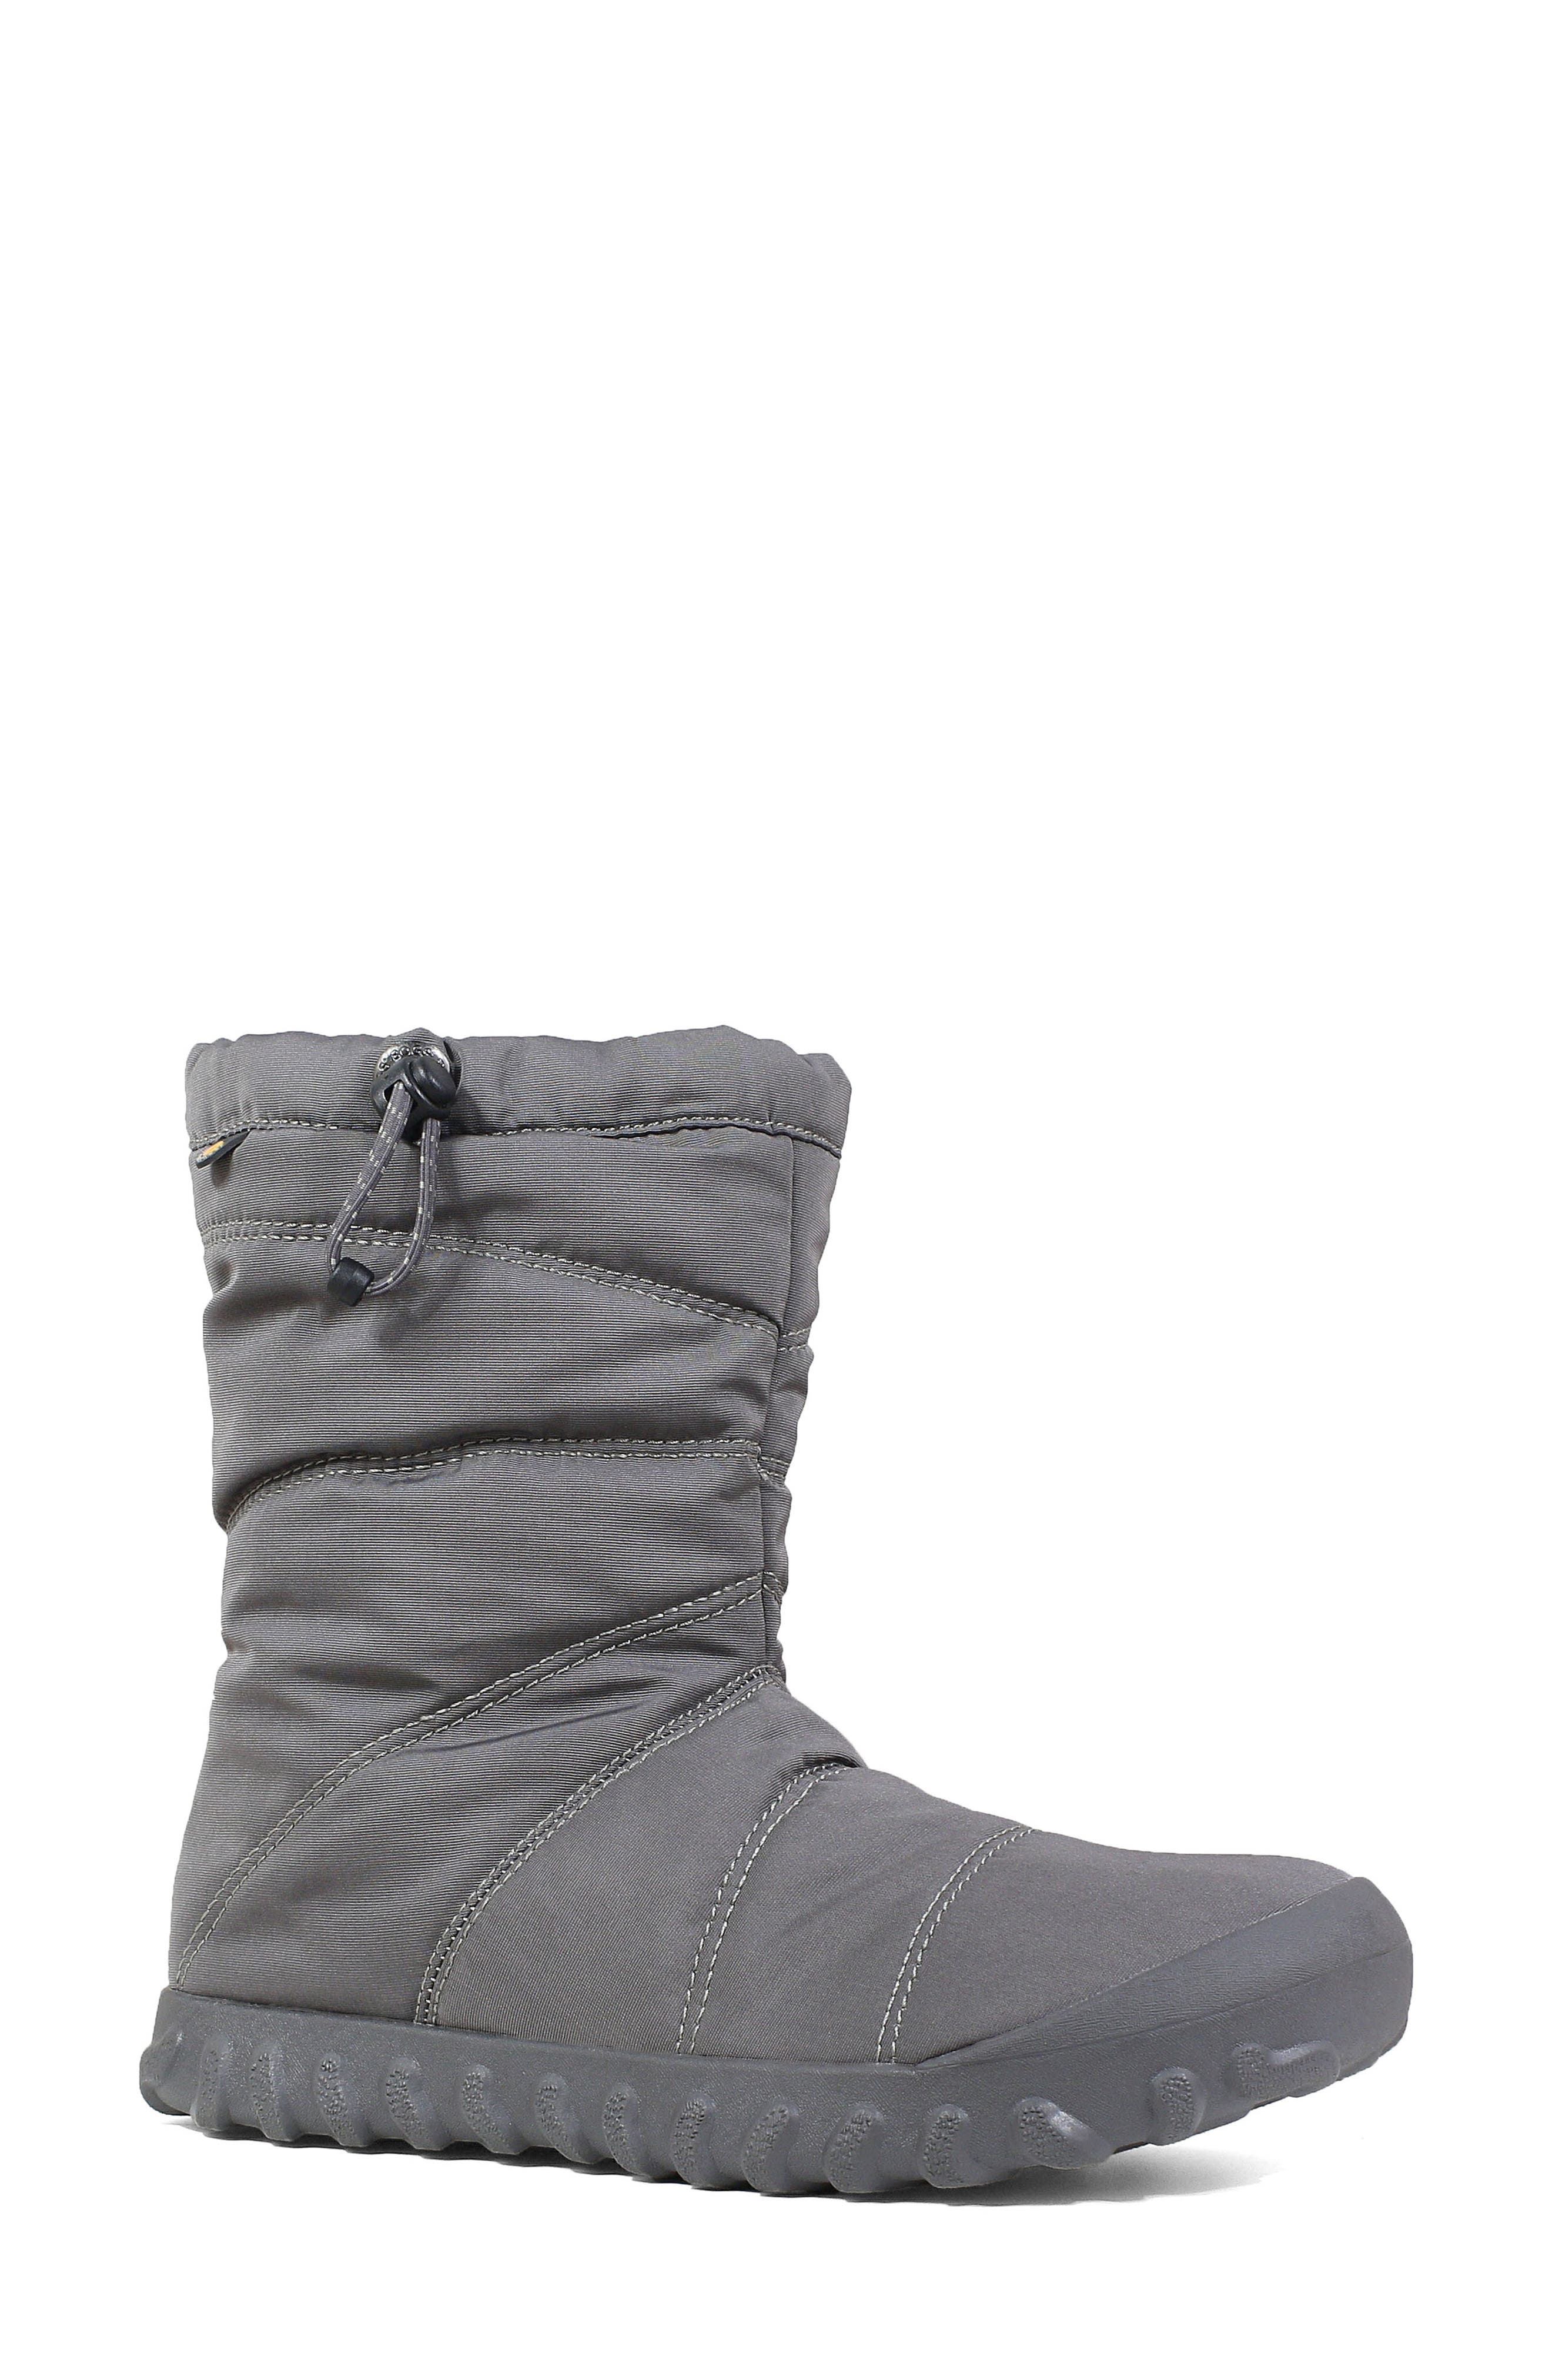 Bogs Puffy Insulated Waterproof Boot, Grey